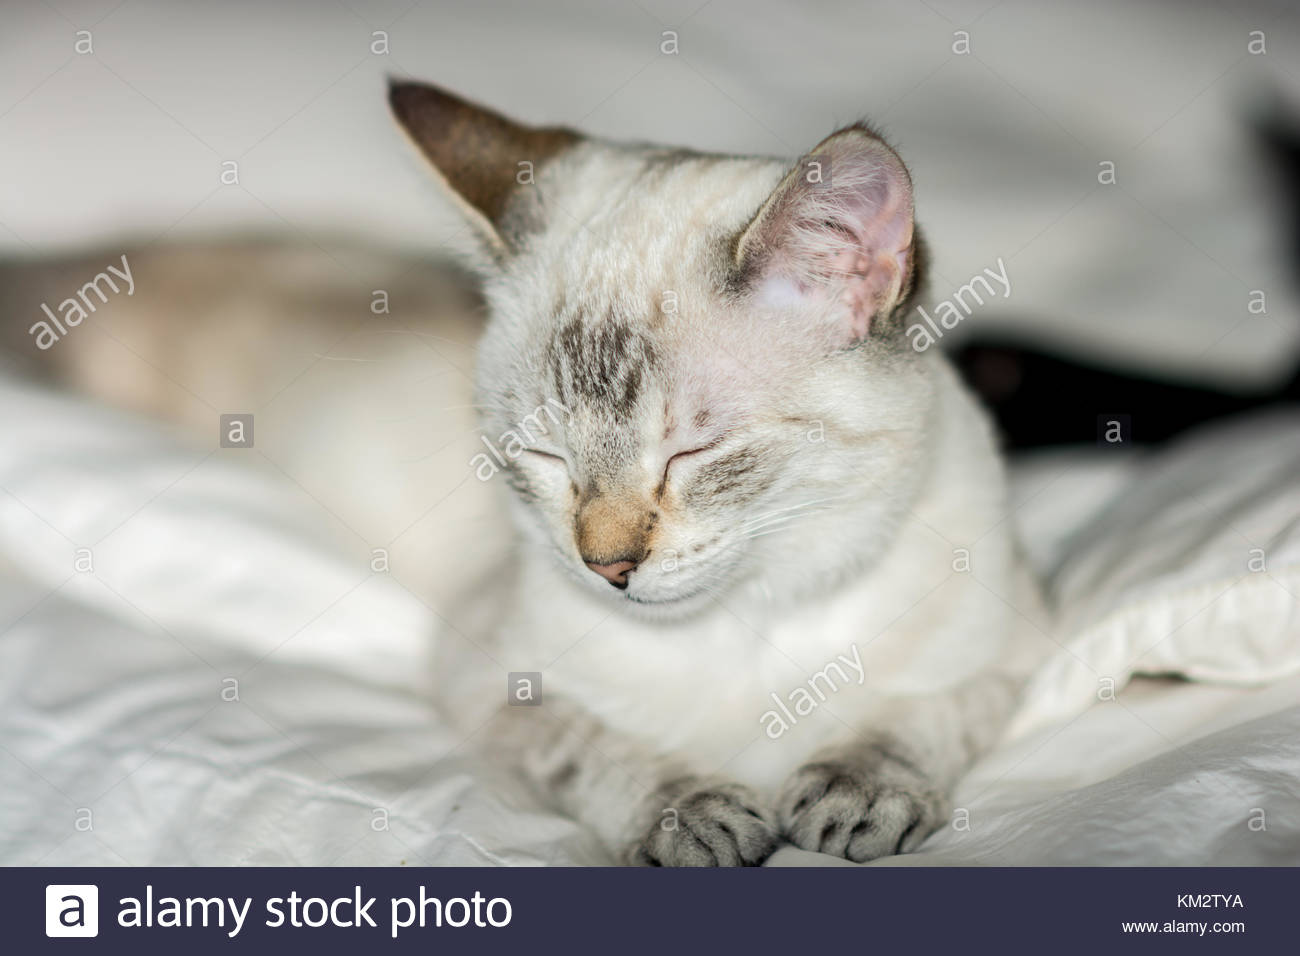 Extremely lazy female common cat  wandering over to the pillow of the bedroom bed - Stock Image